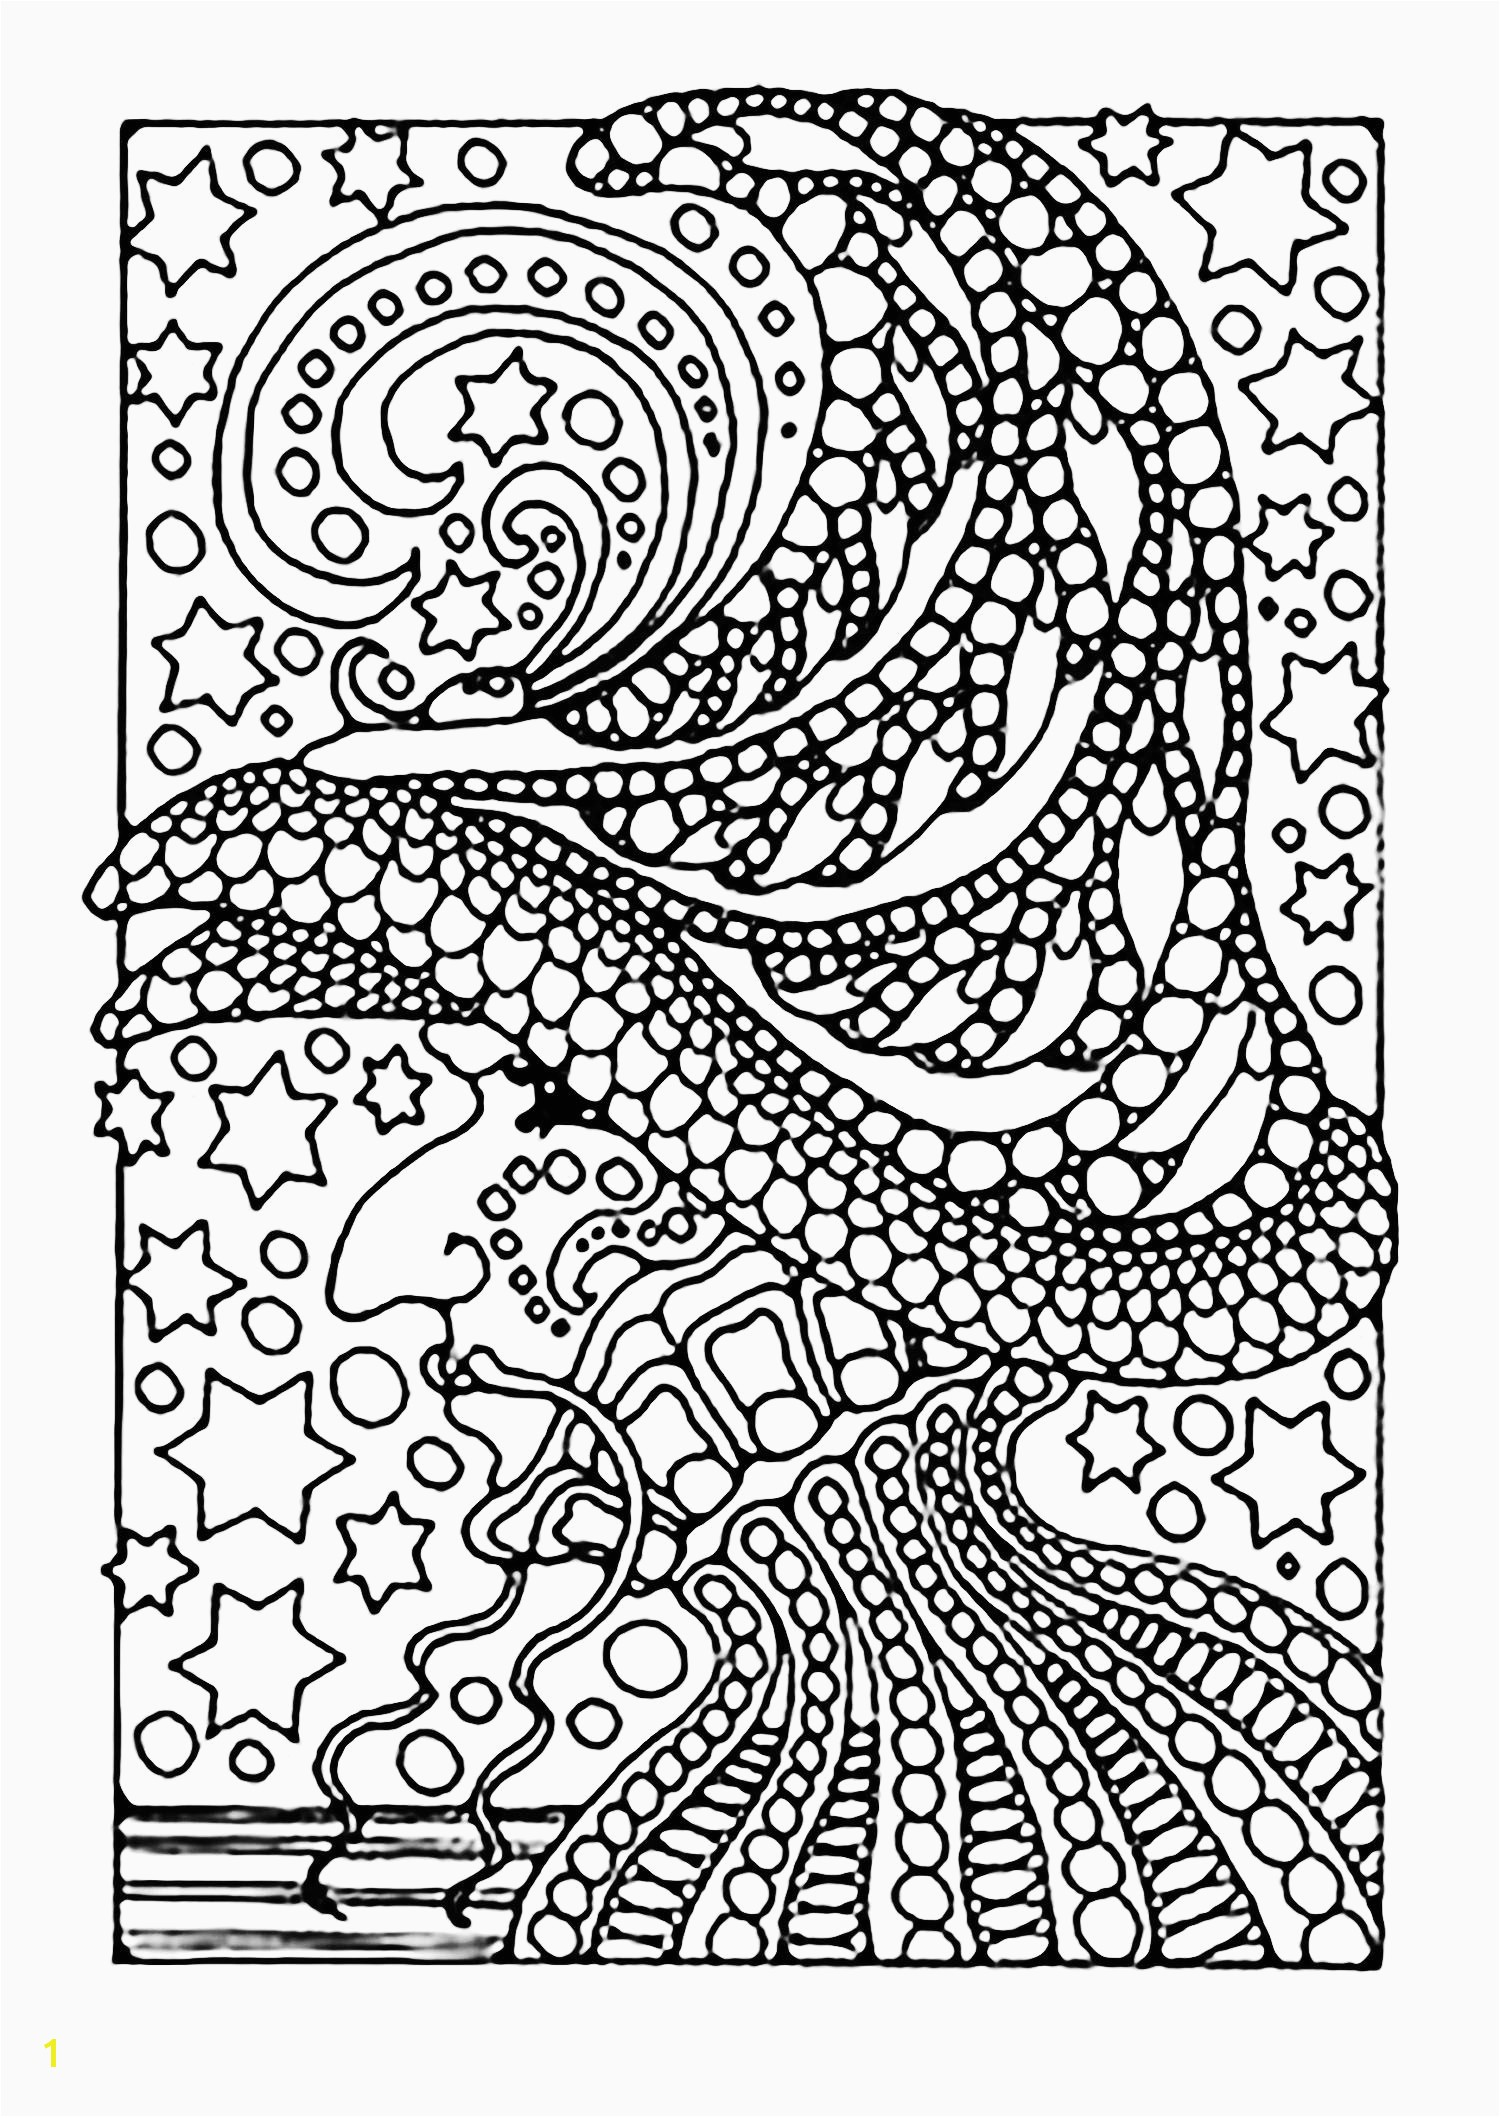 Detailed Coloring Pages for Teens New Cool Coloring Page Unique Witch Coloring Pages New Crayola Pages